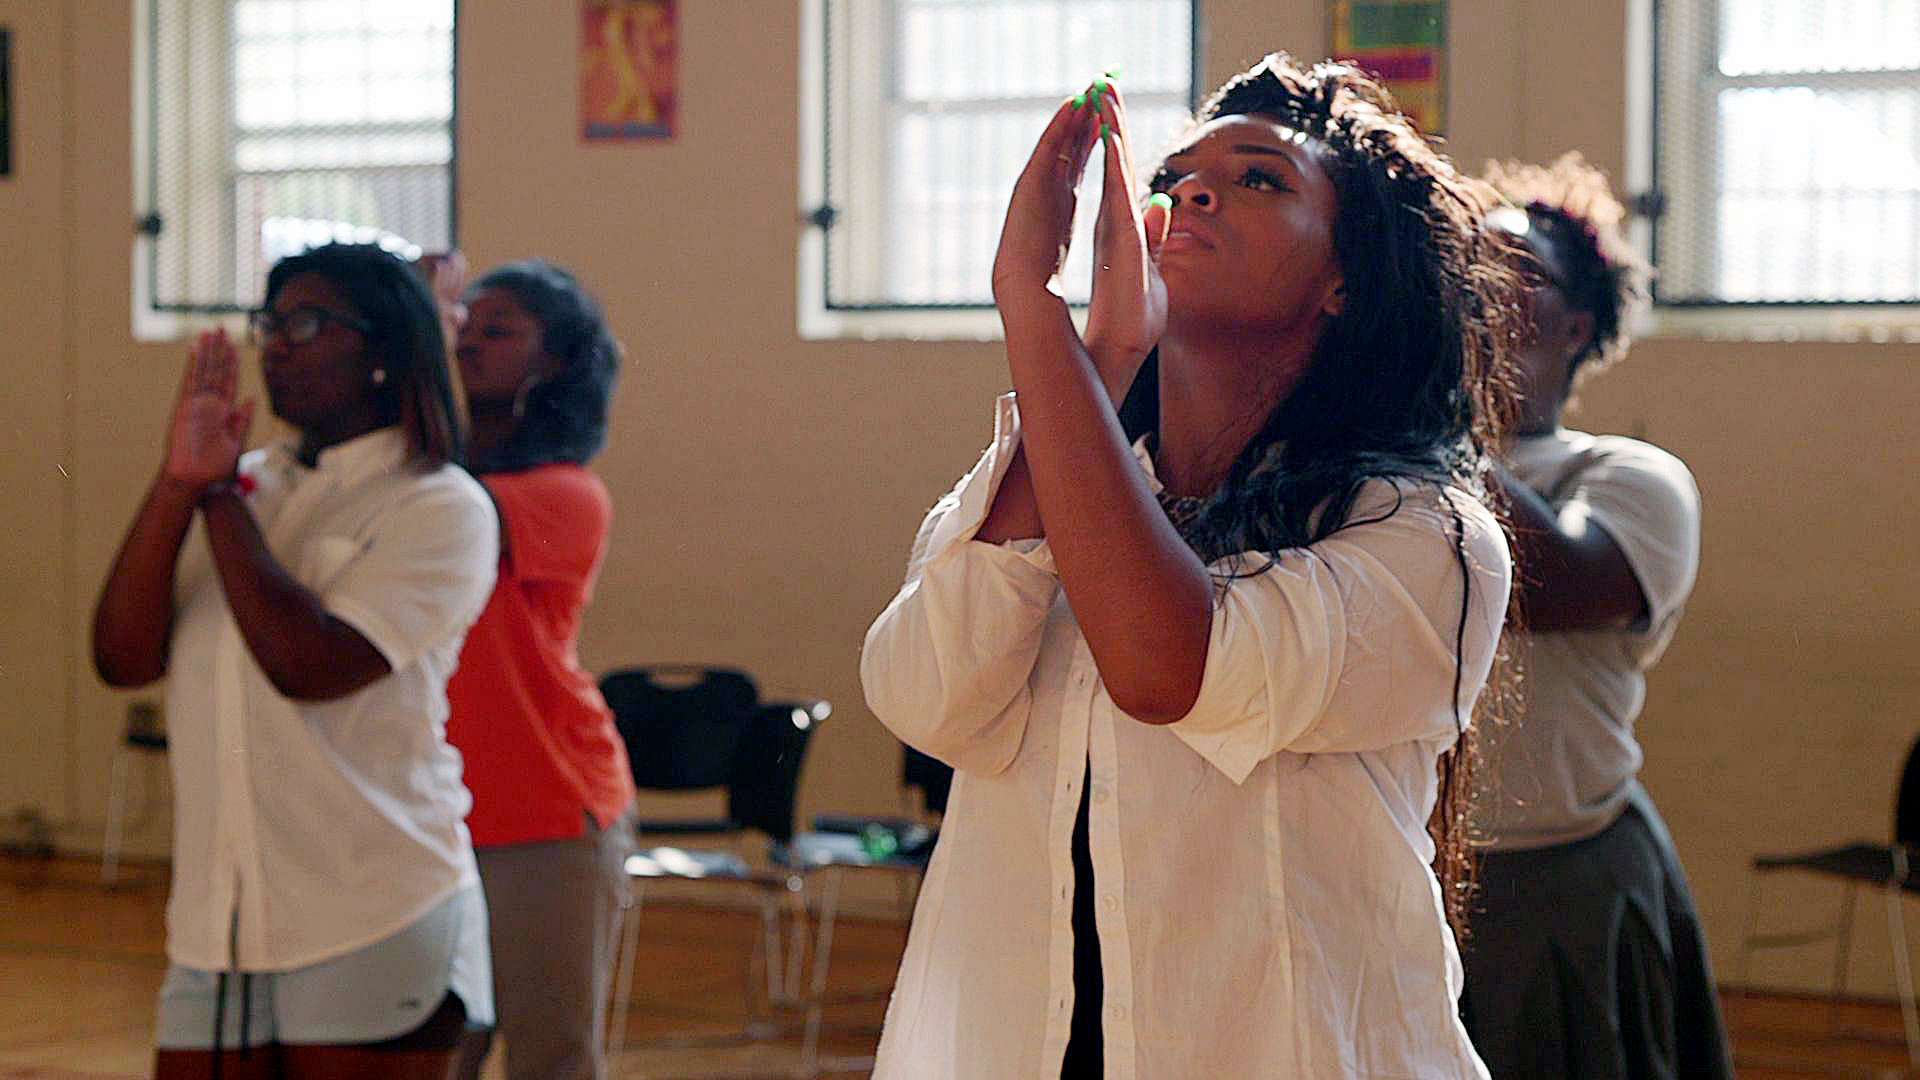 The students from the Baltimore Leadership School for Young Women in a new film about their graduation (Courtesy photo)